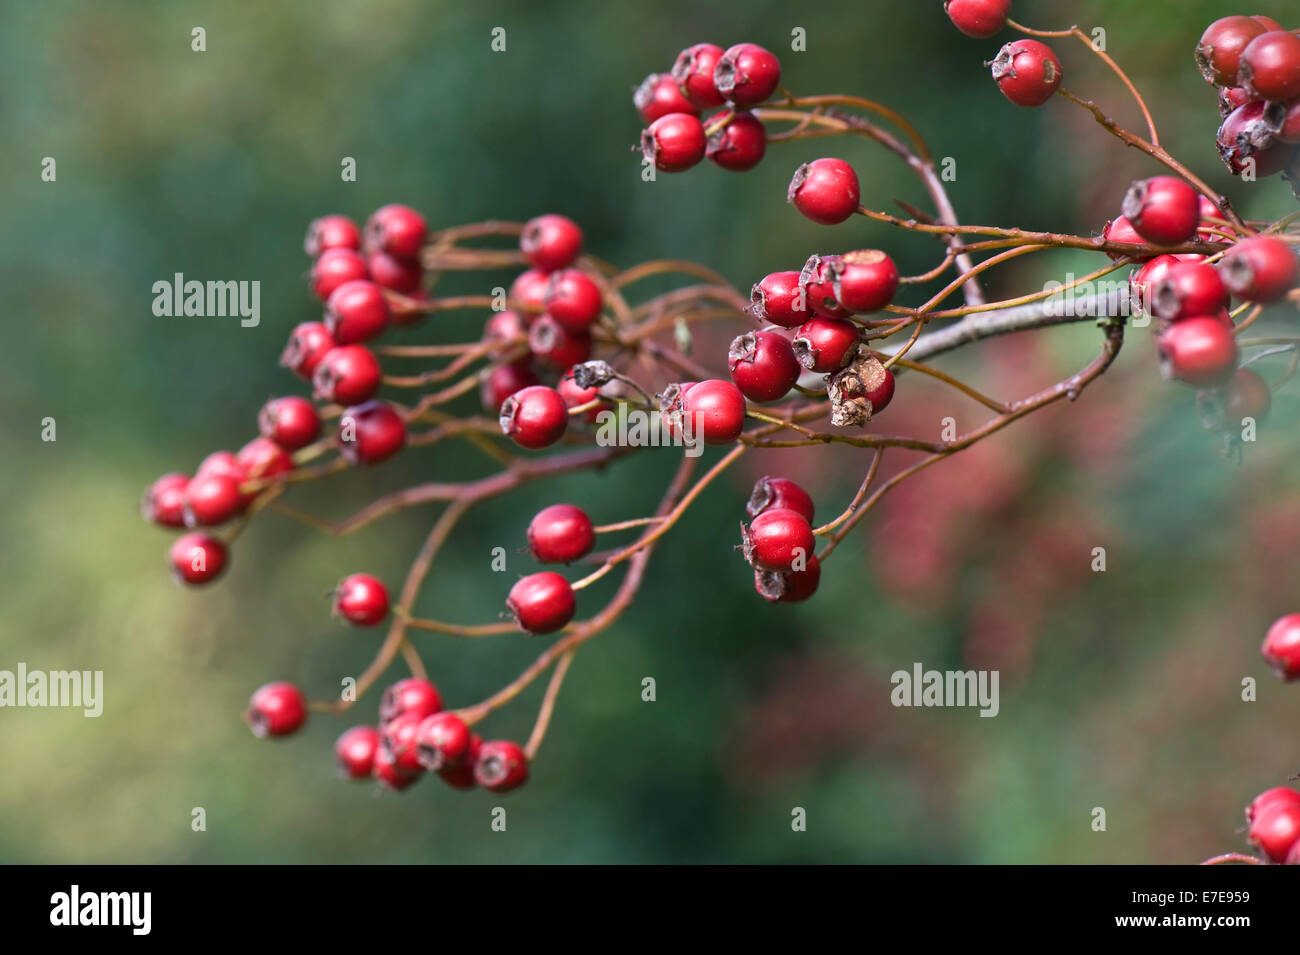 Hawthorn, quickthorn or May tree, Crataegus monogyna with plentiful ripe red berries in late summer - Stock Image